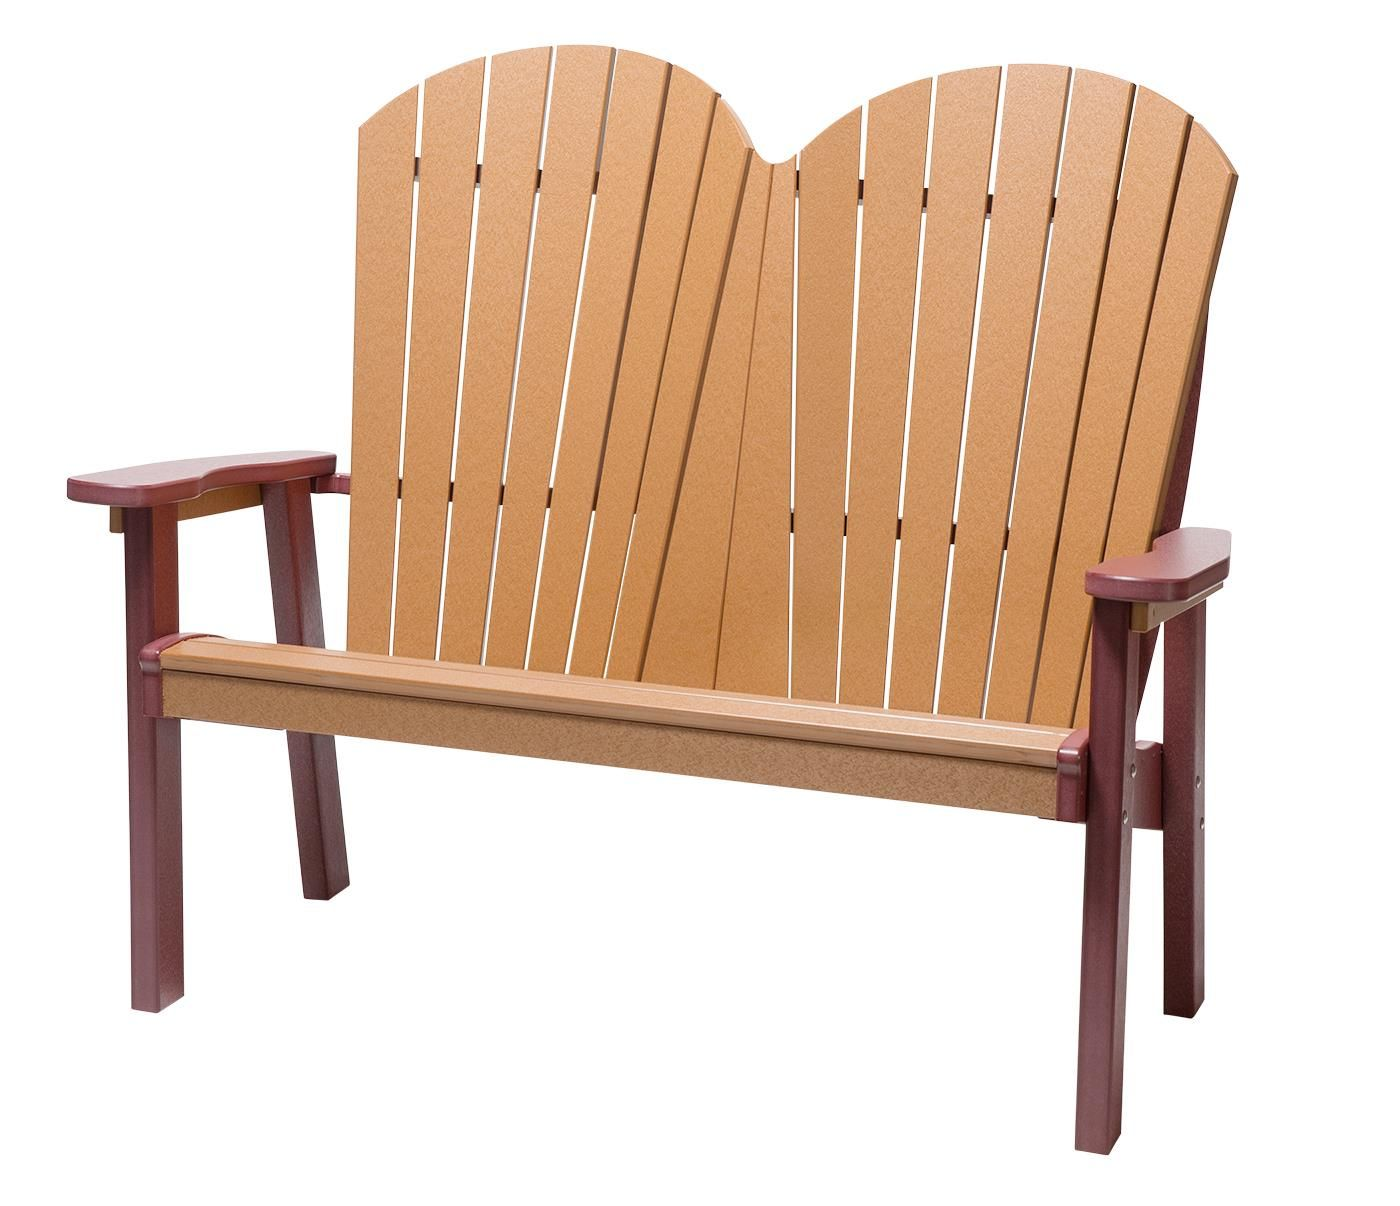 Finch Seaaira Poly Adirondack Bench Poly Outdoor Furniture